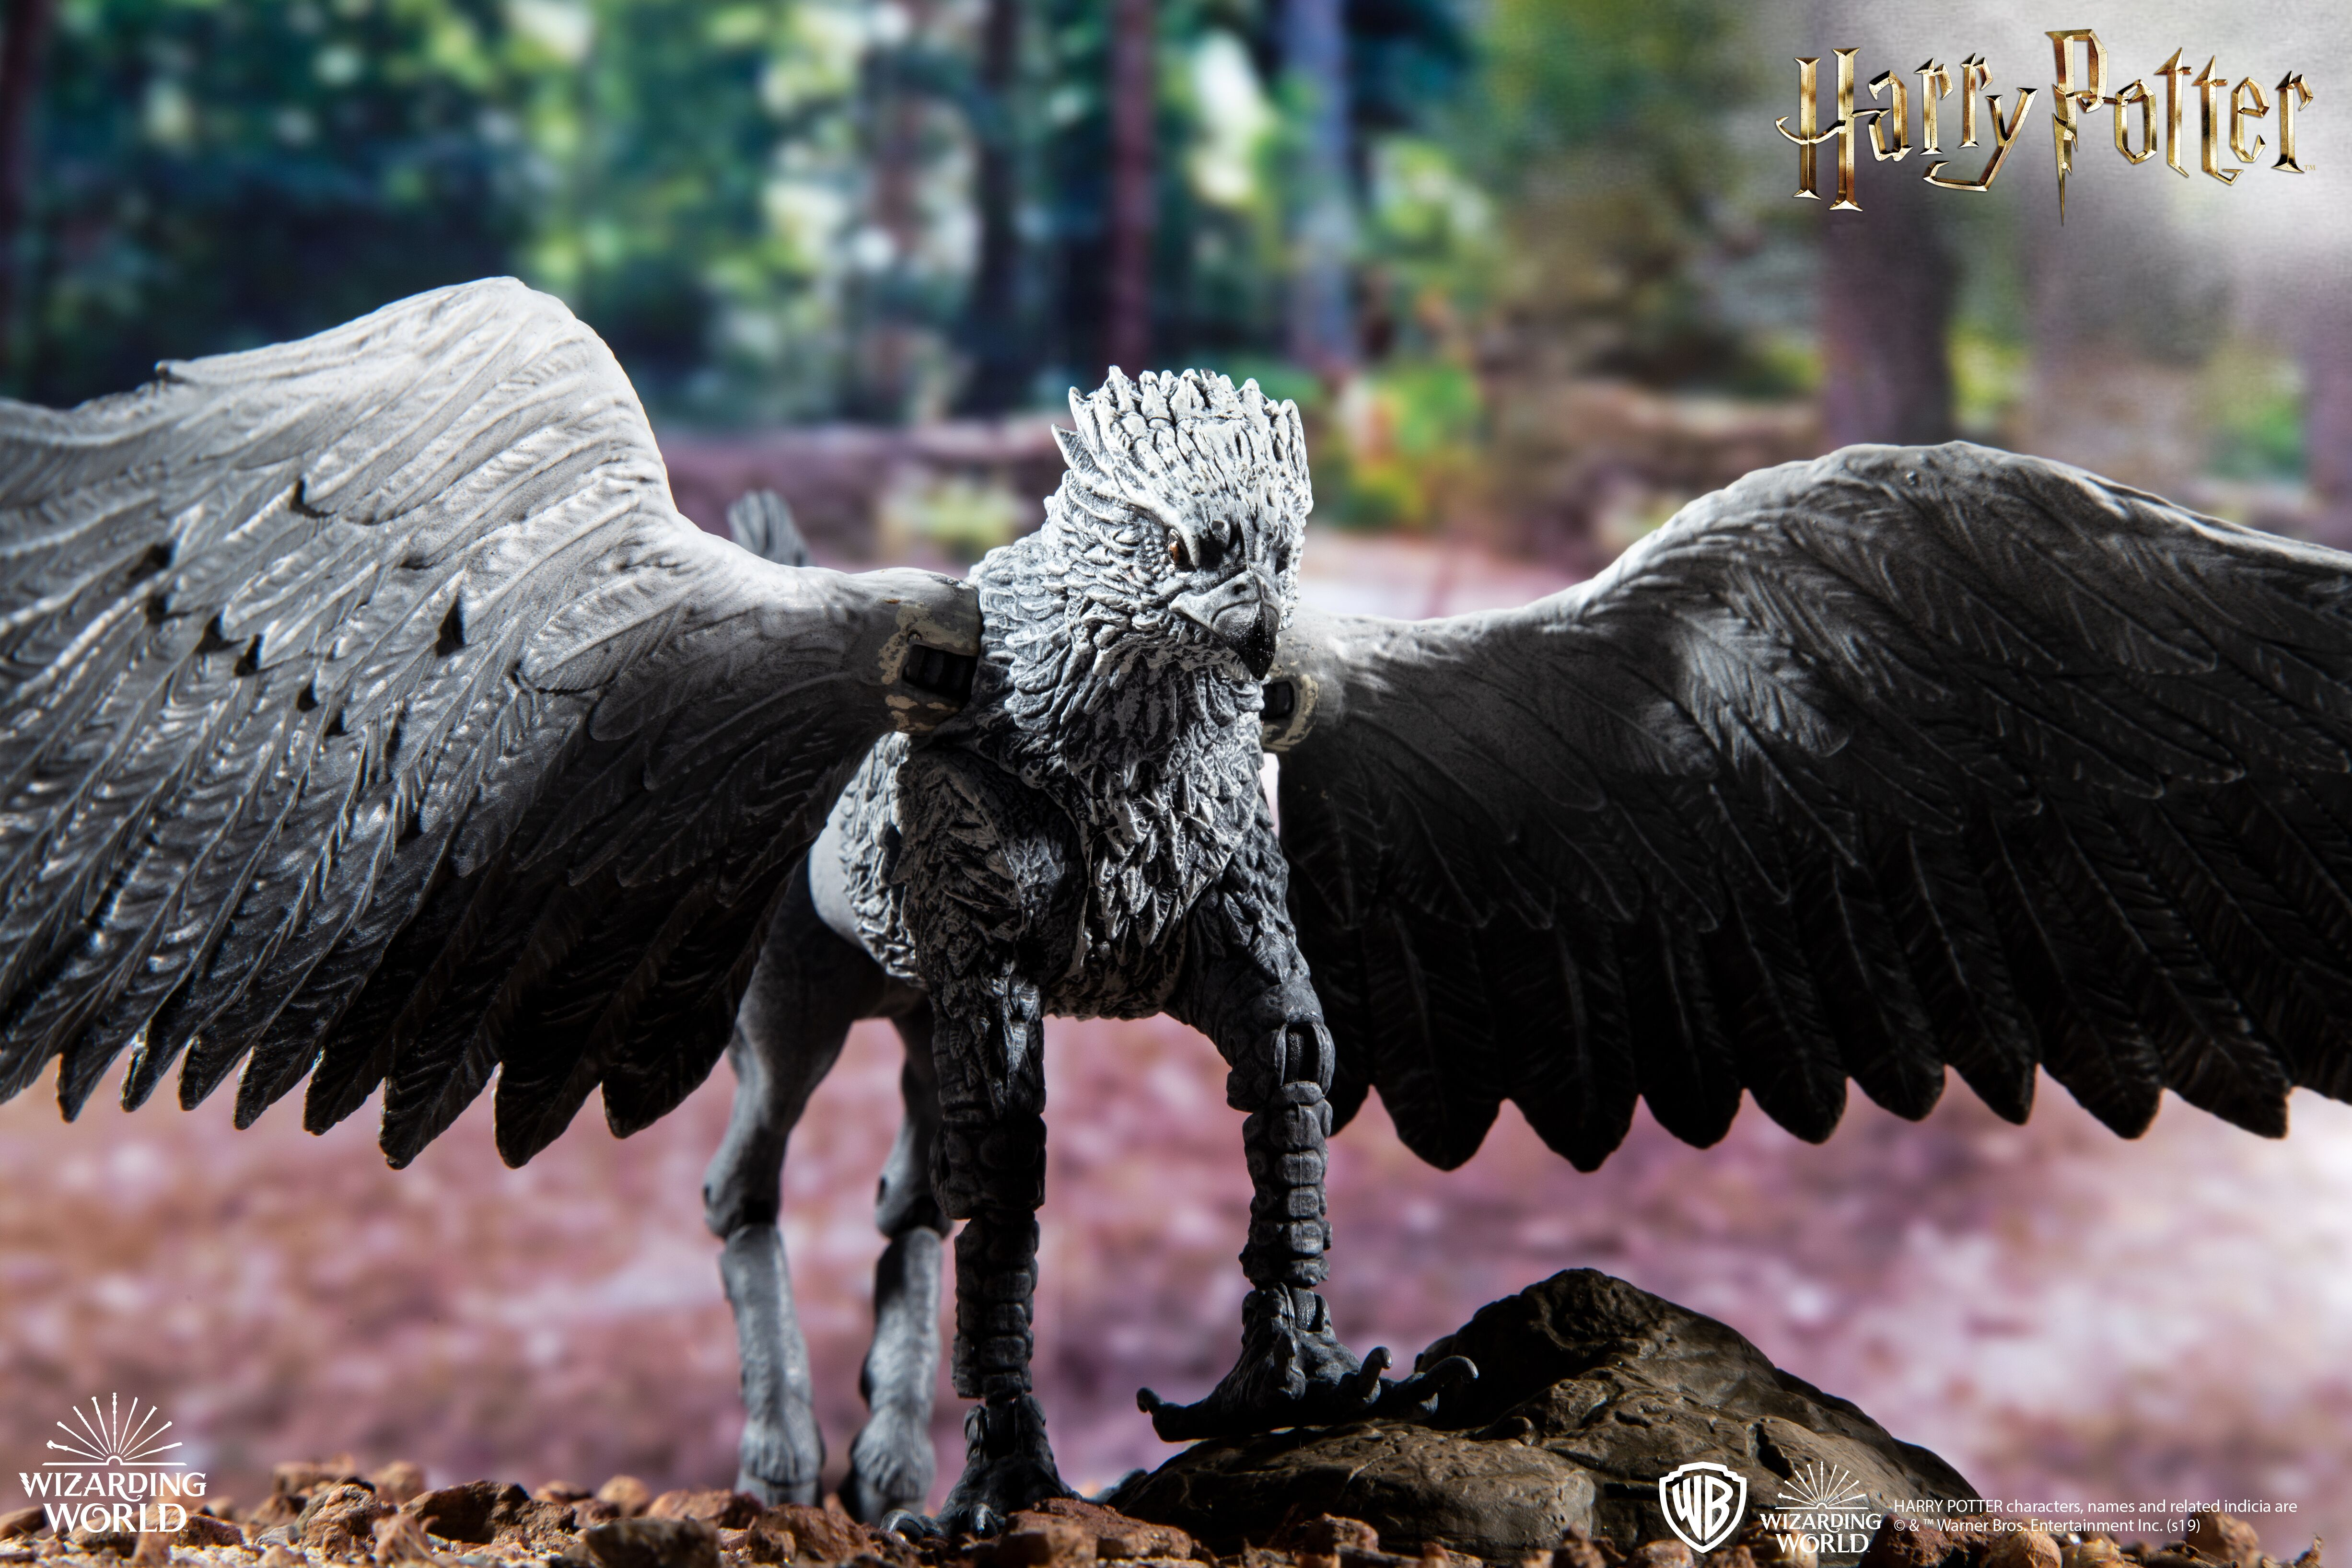 Buckbeak looks ready to take flight in this new figure from McFarlane Toys' creature line.